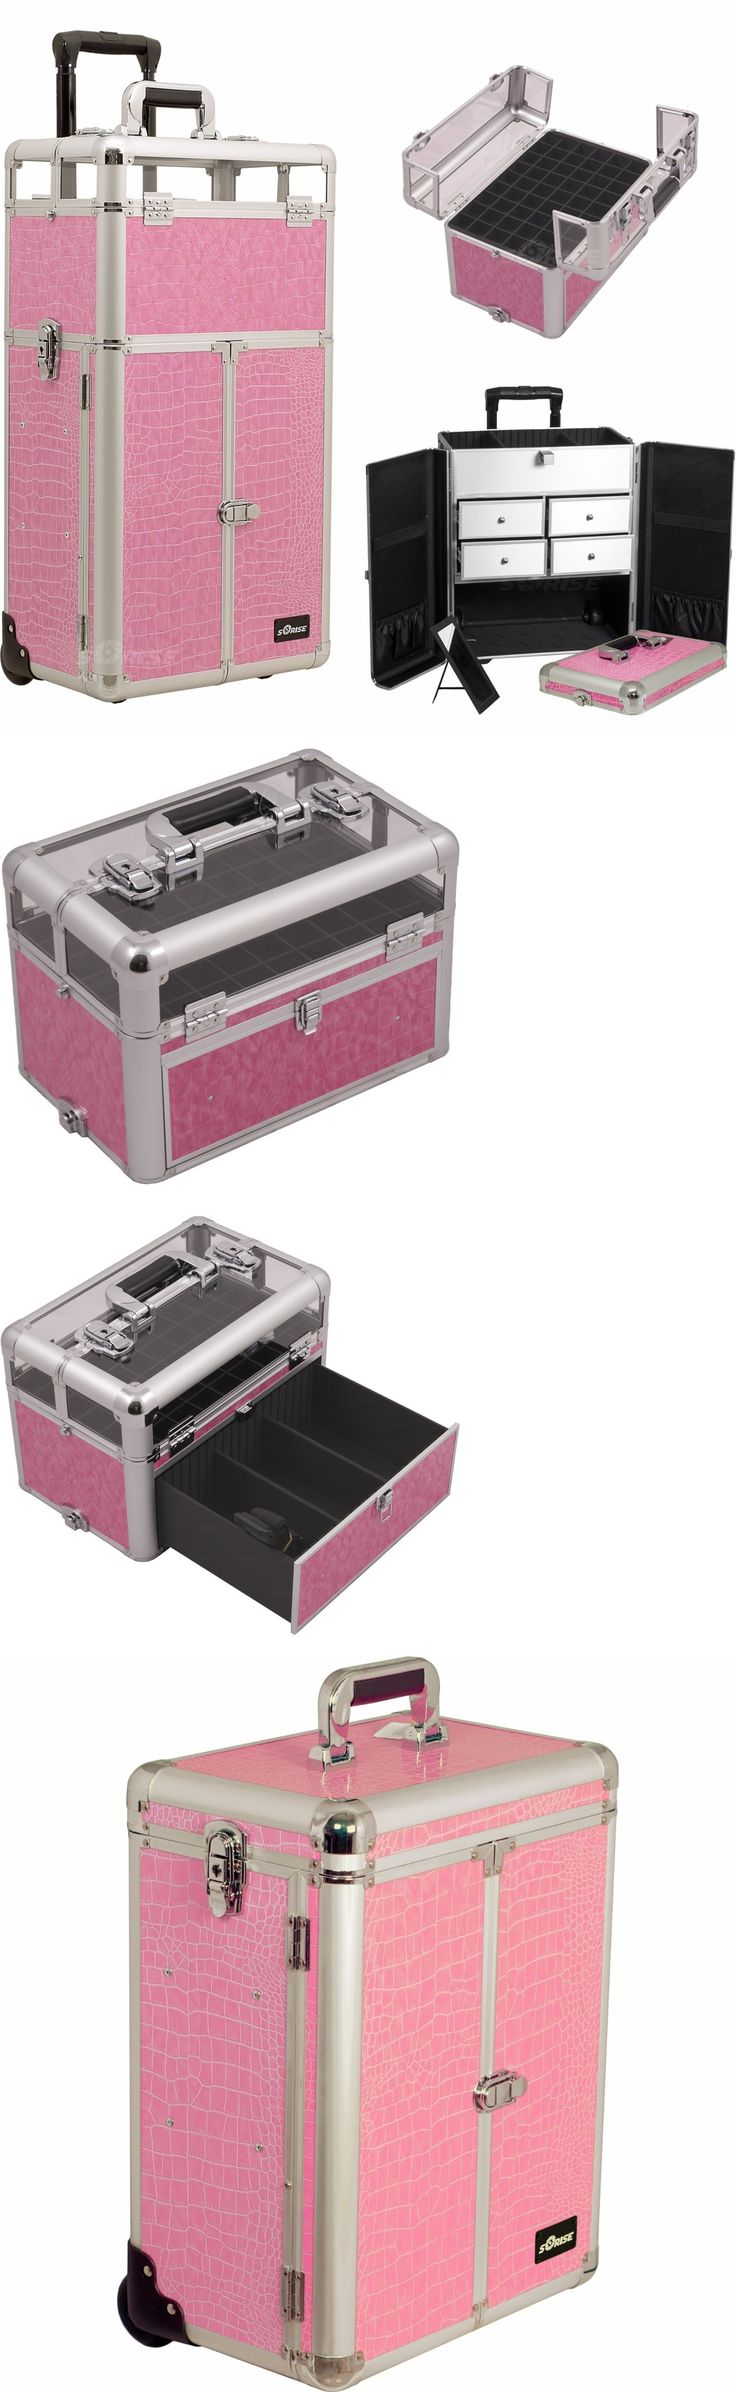 Gel Nails: Pink Opi Nail Polish Manicure Pedicure Makeup Trolley Case Organizers Storage BUY IT NOW ONLY: $219.99